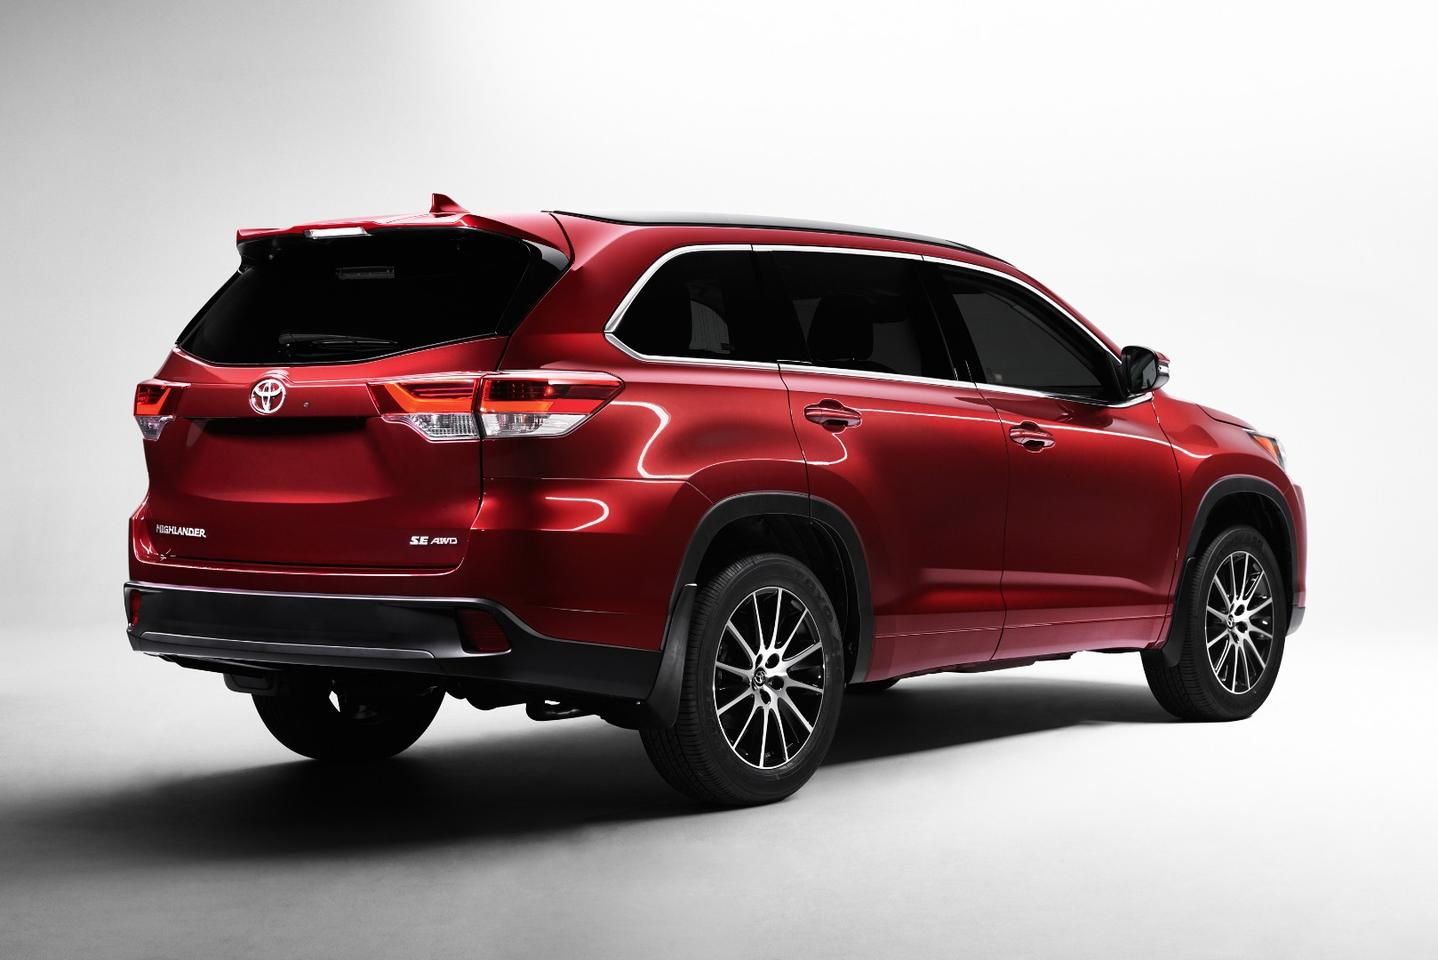 The Highlander has been given some cosmetic external changes in keeping with the upgraded engine and transmission